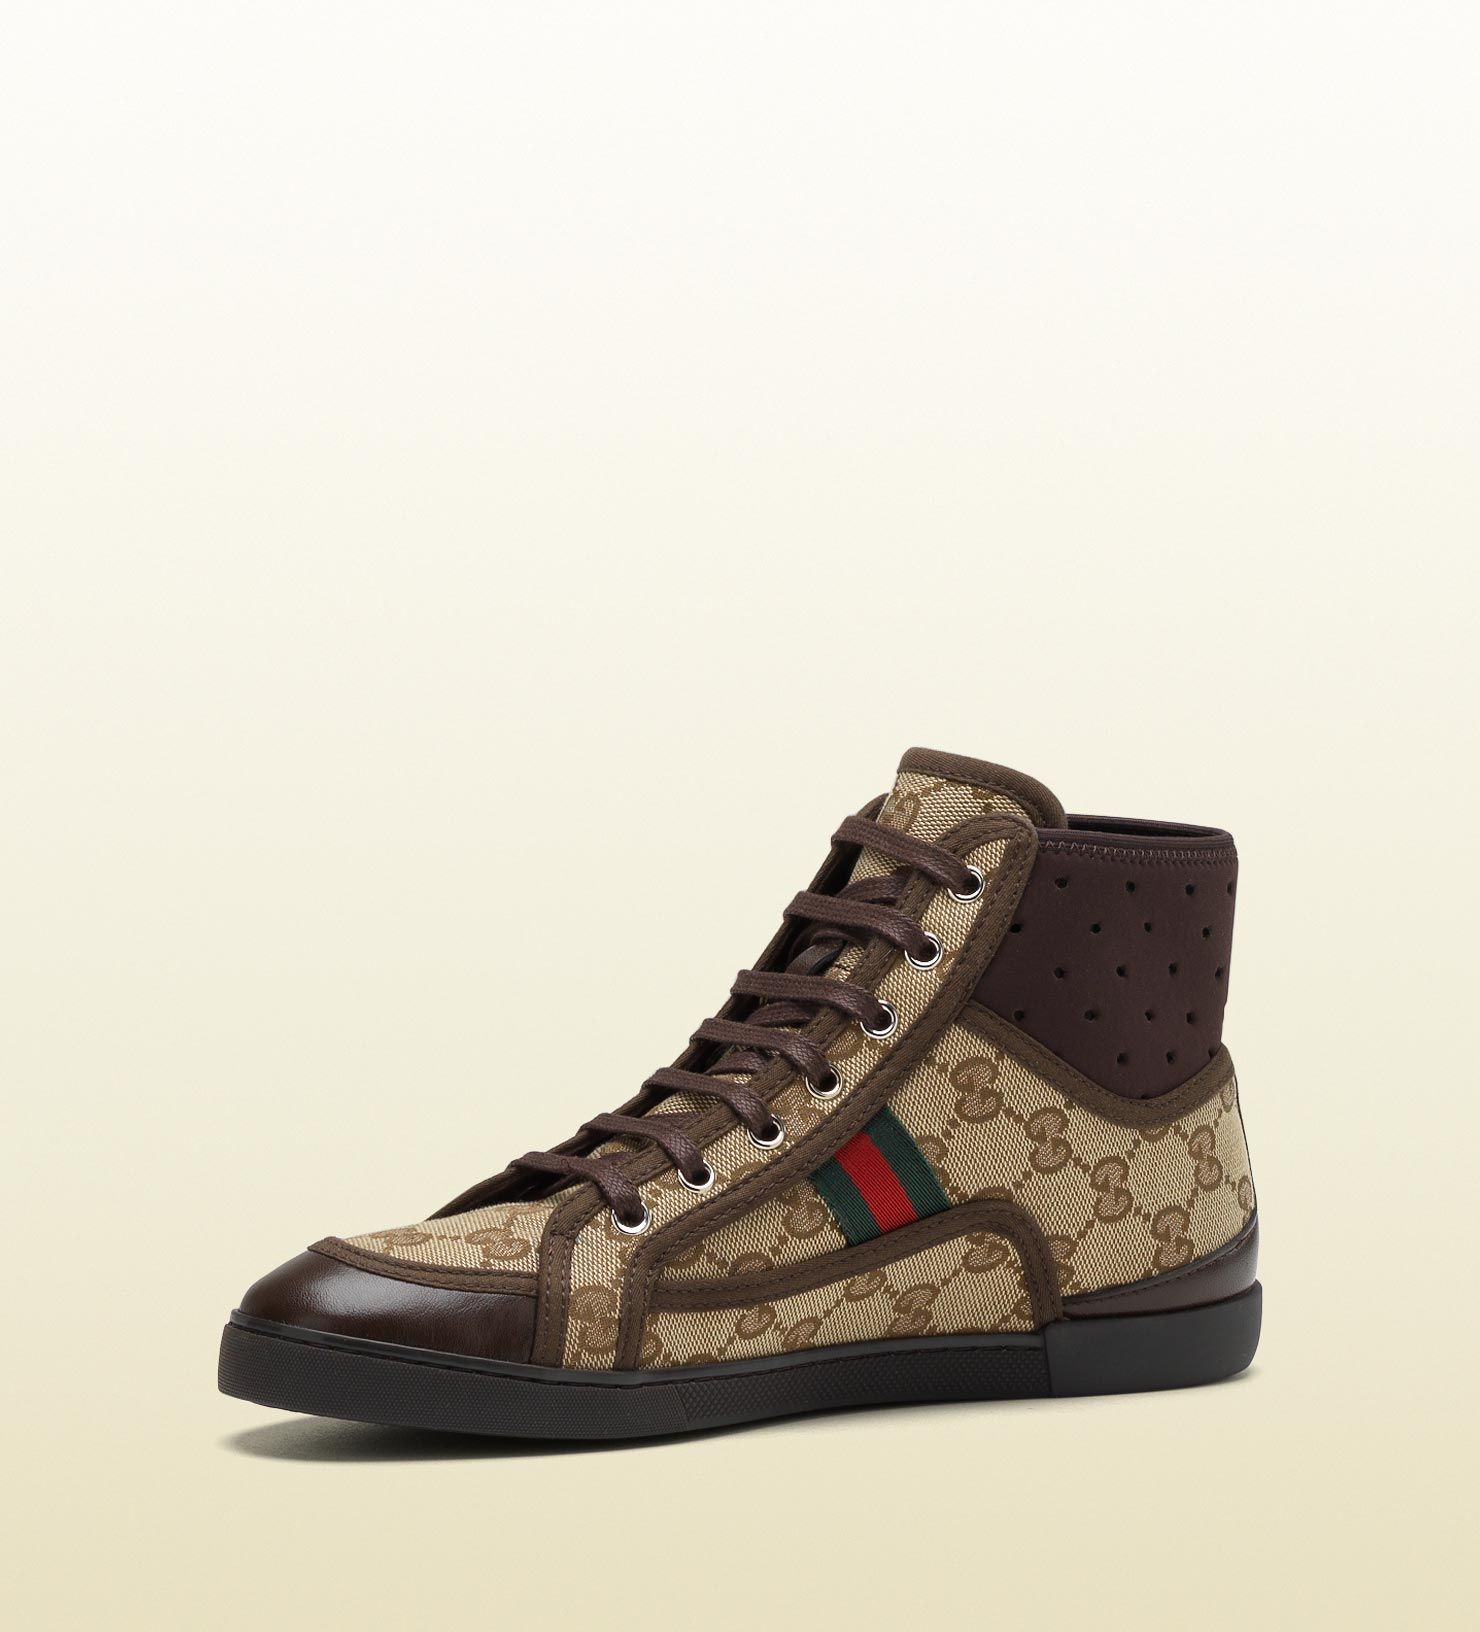 Gucci Womens Shoes Cannes High-Top